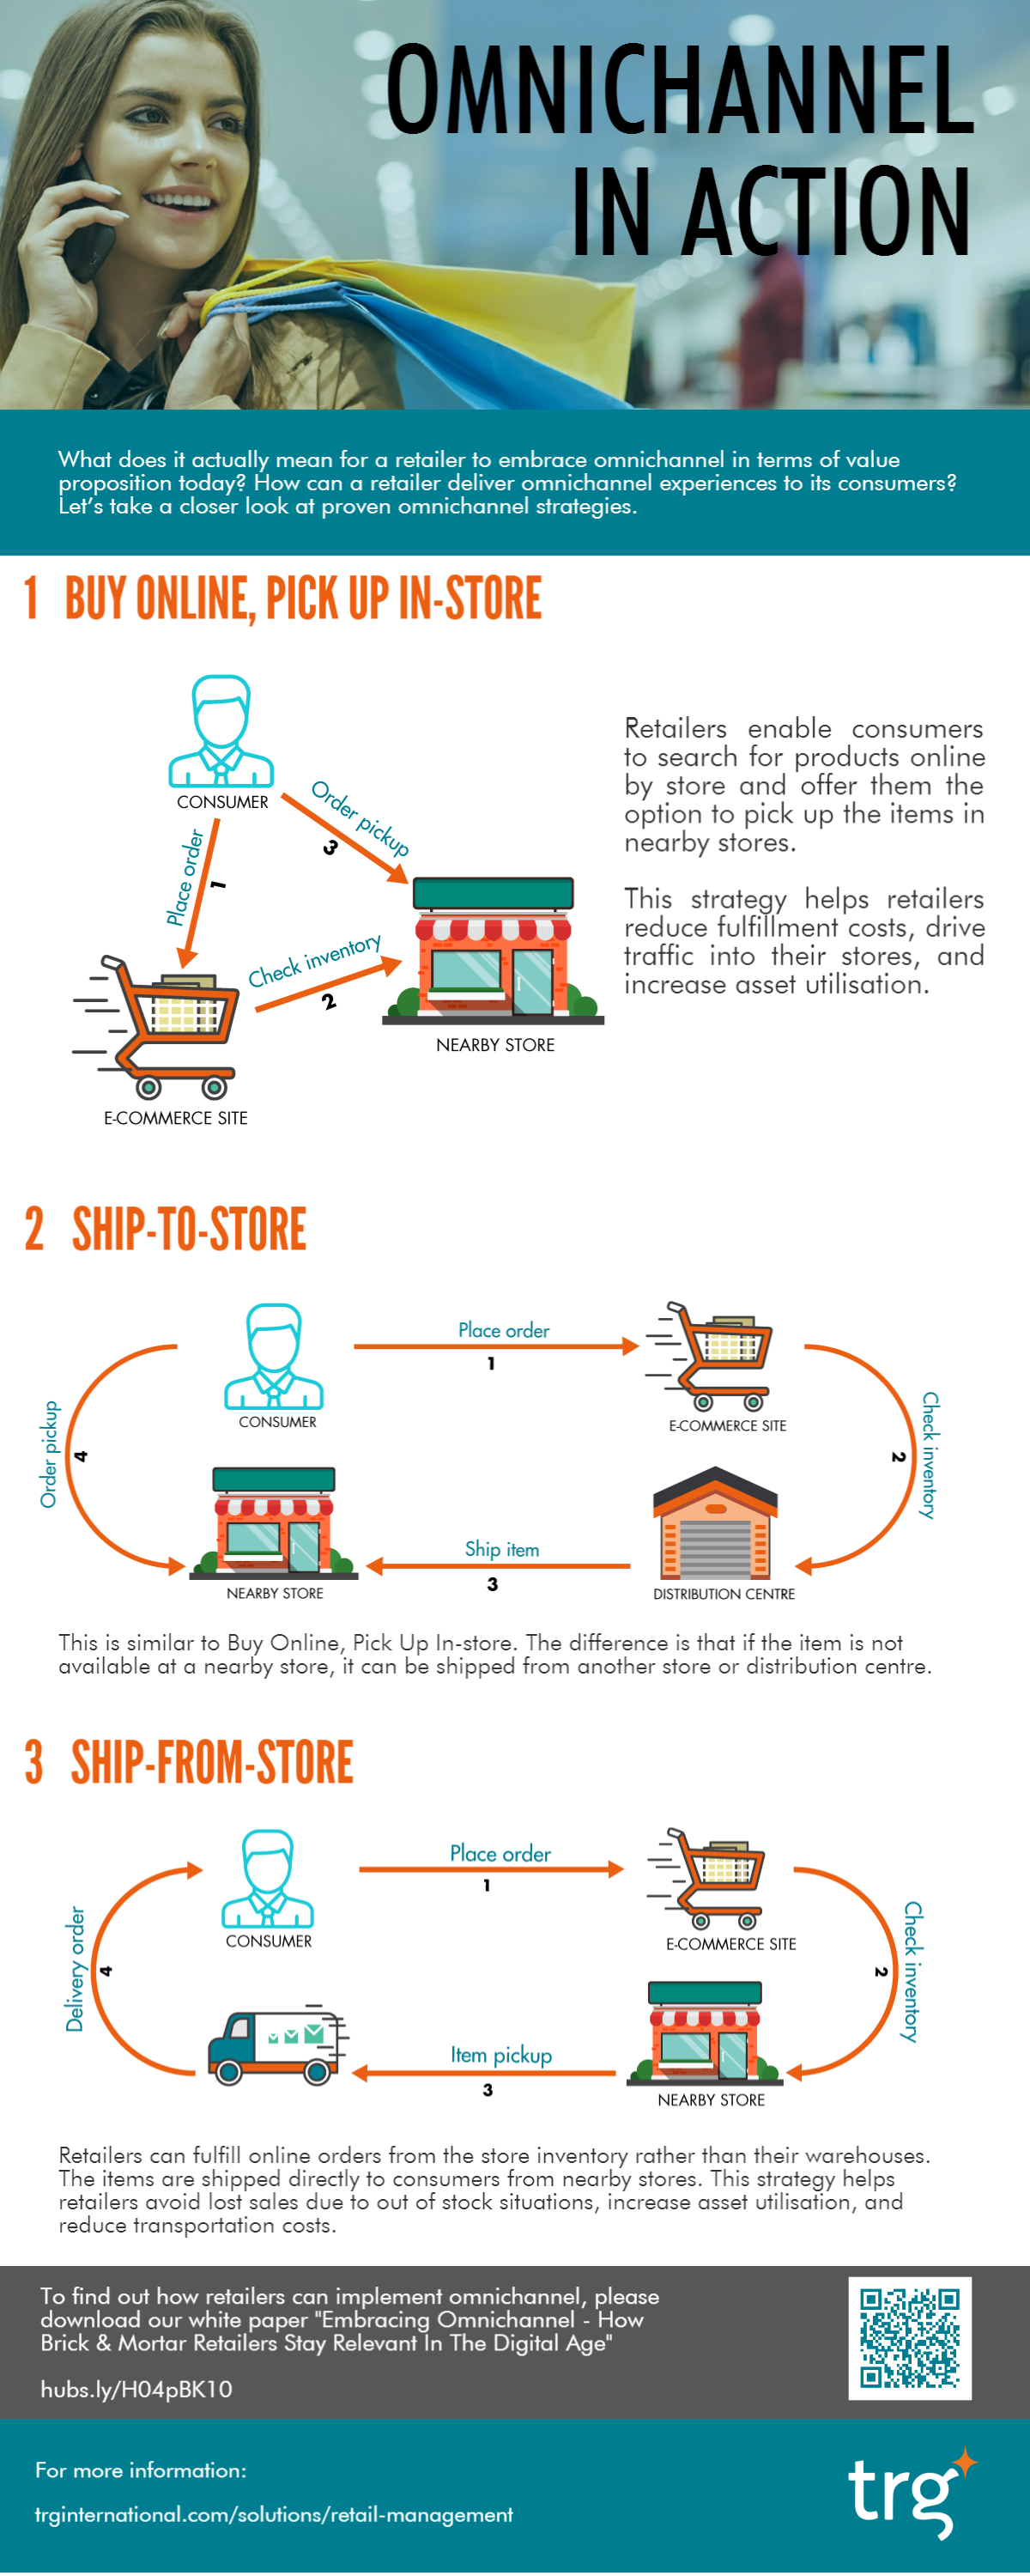 [INFOGRAPHIC] Omnichannel in action